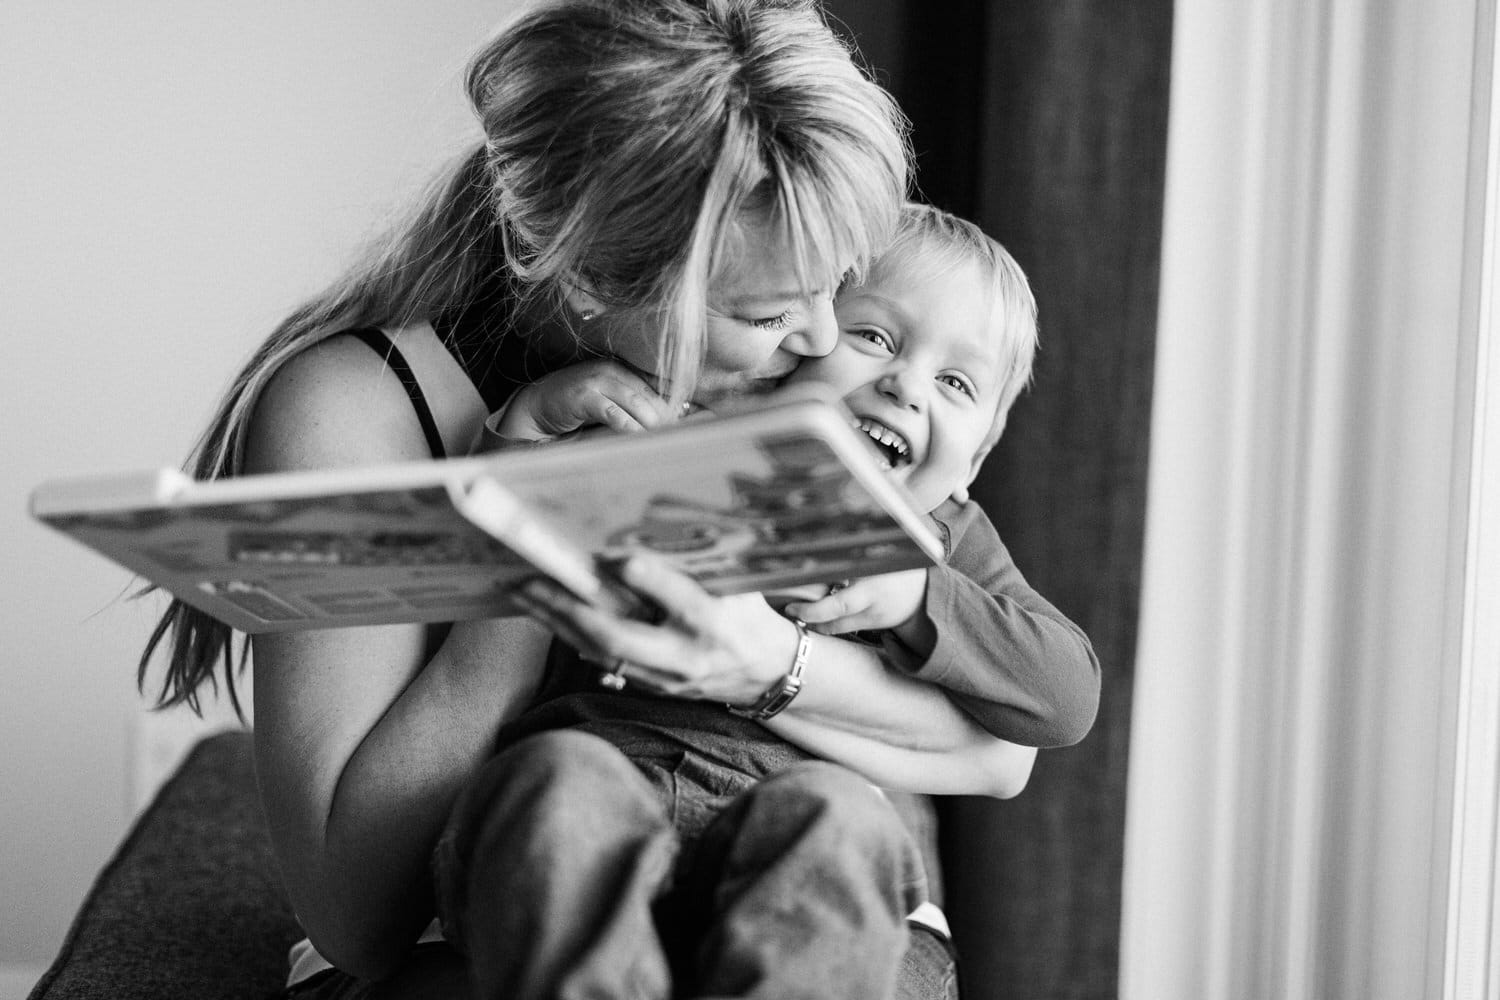 Mom and toddler playing together by a window during a Calgary based family shoot